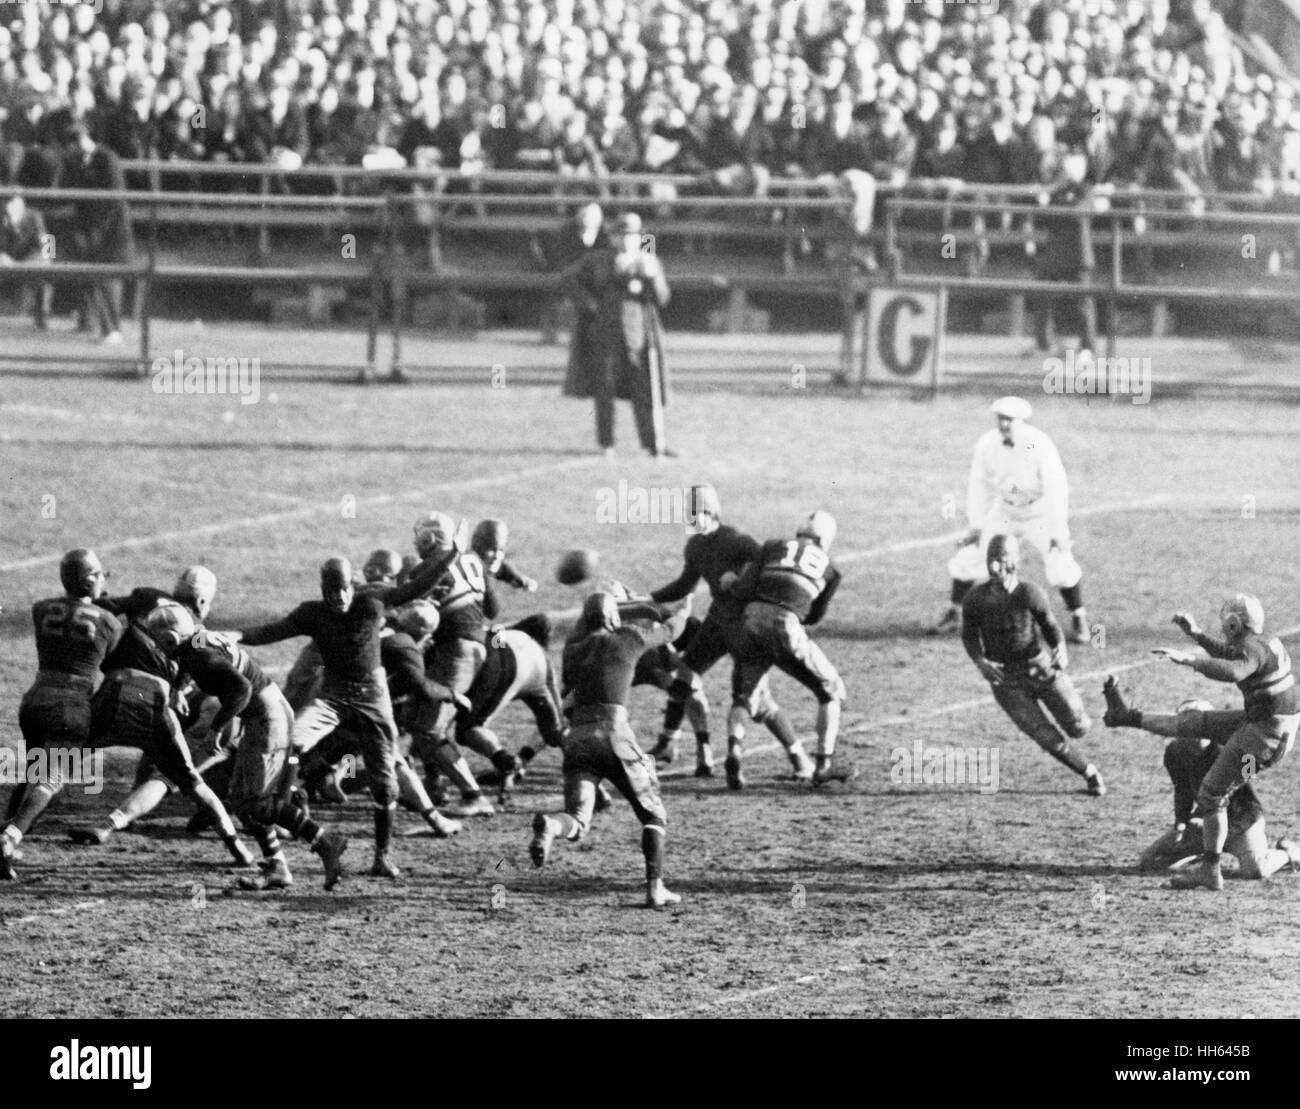 American football match between Army and Navy teams at the Yankee Stadium, New York City, USA, 12 December 1931. - Stock Image